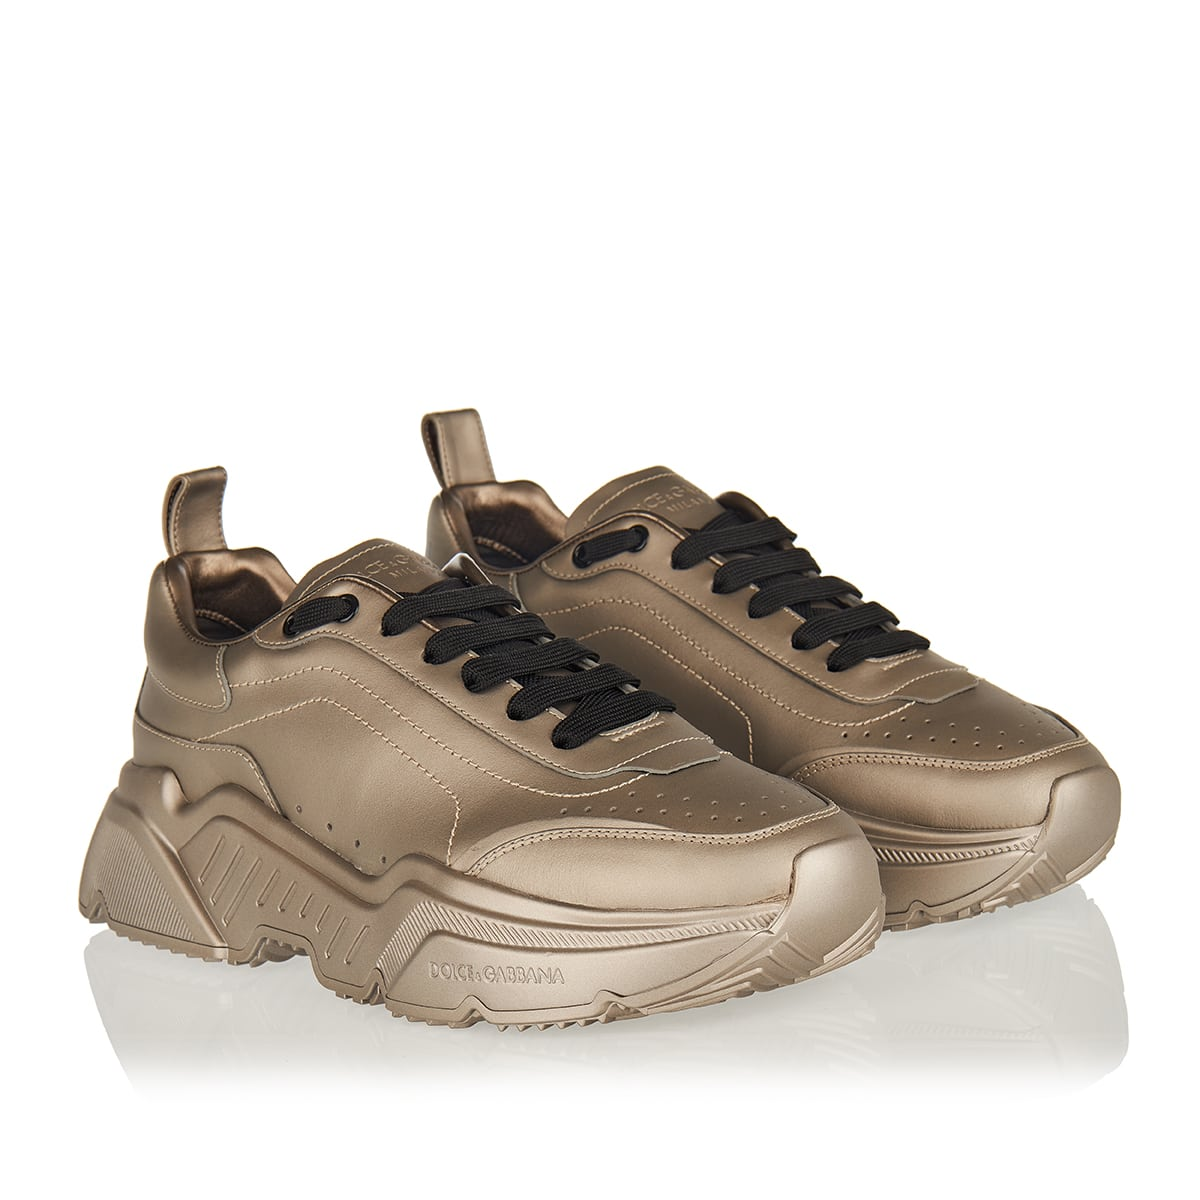 Daymaster metallic leather sneakers